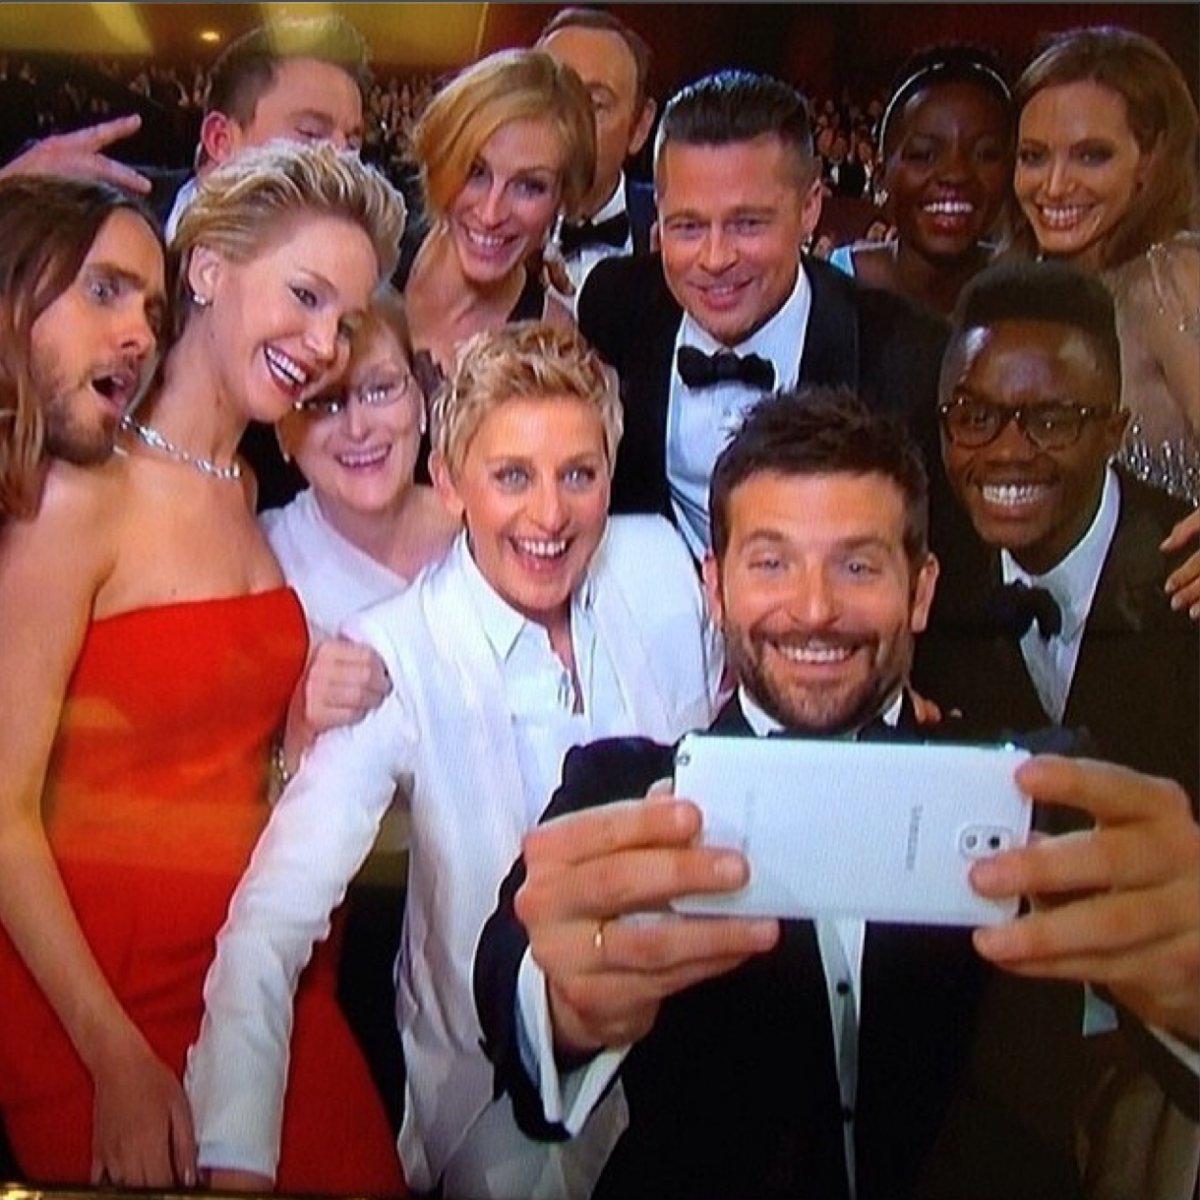 The Best Instagrams of the 2014 Oscars